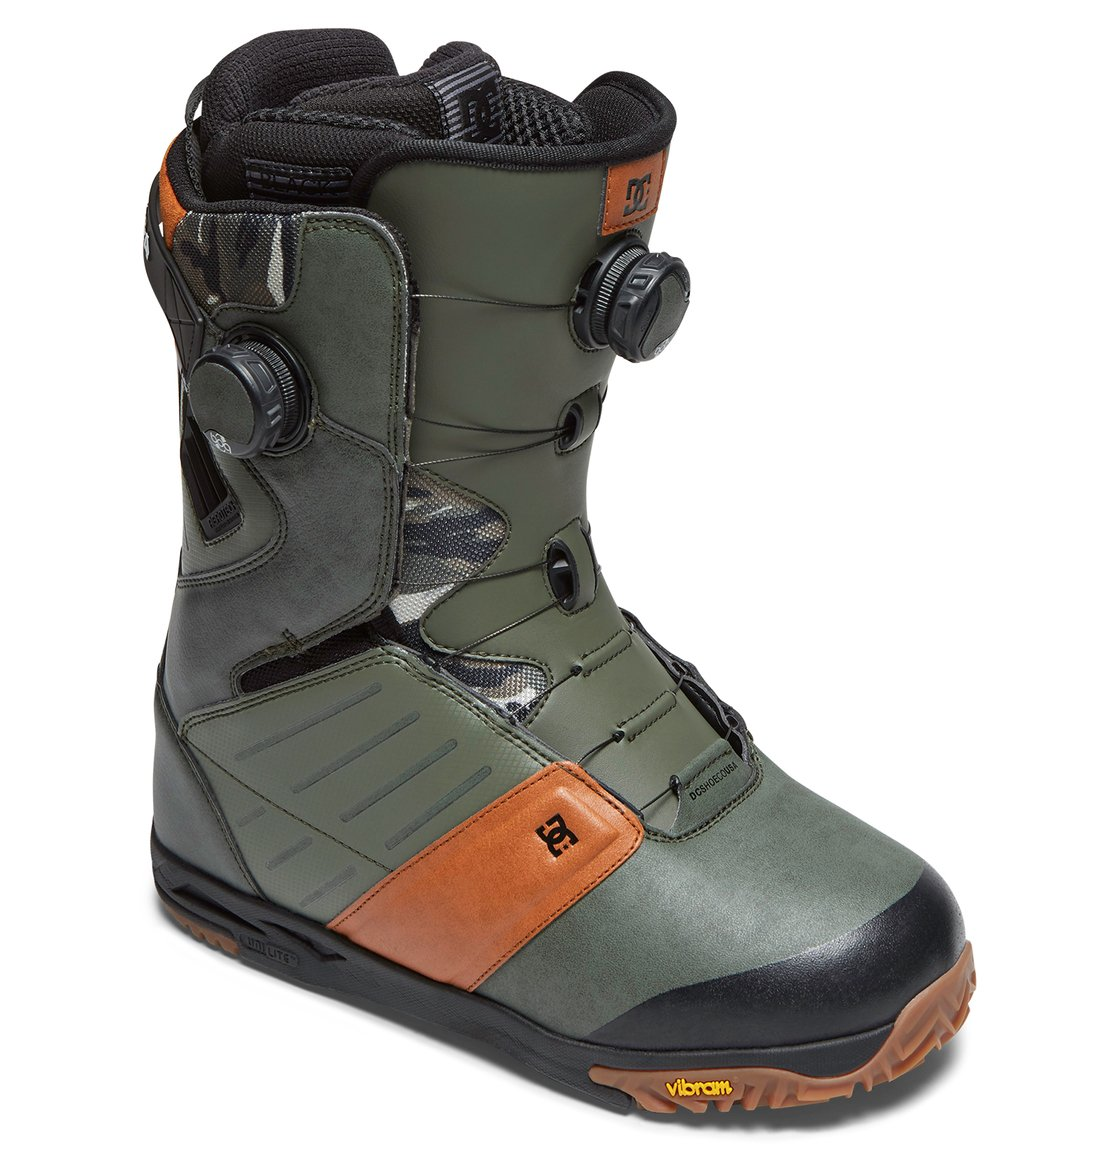 judge boa snowboard boots adyo100025 dc shoes. Black Bedroom Furniture Sets. Home Design Ideas